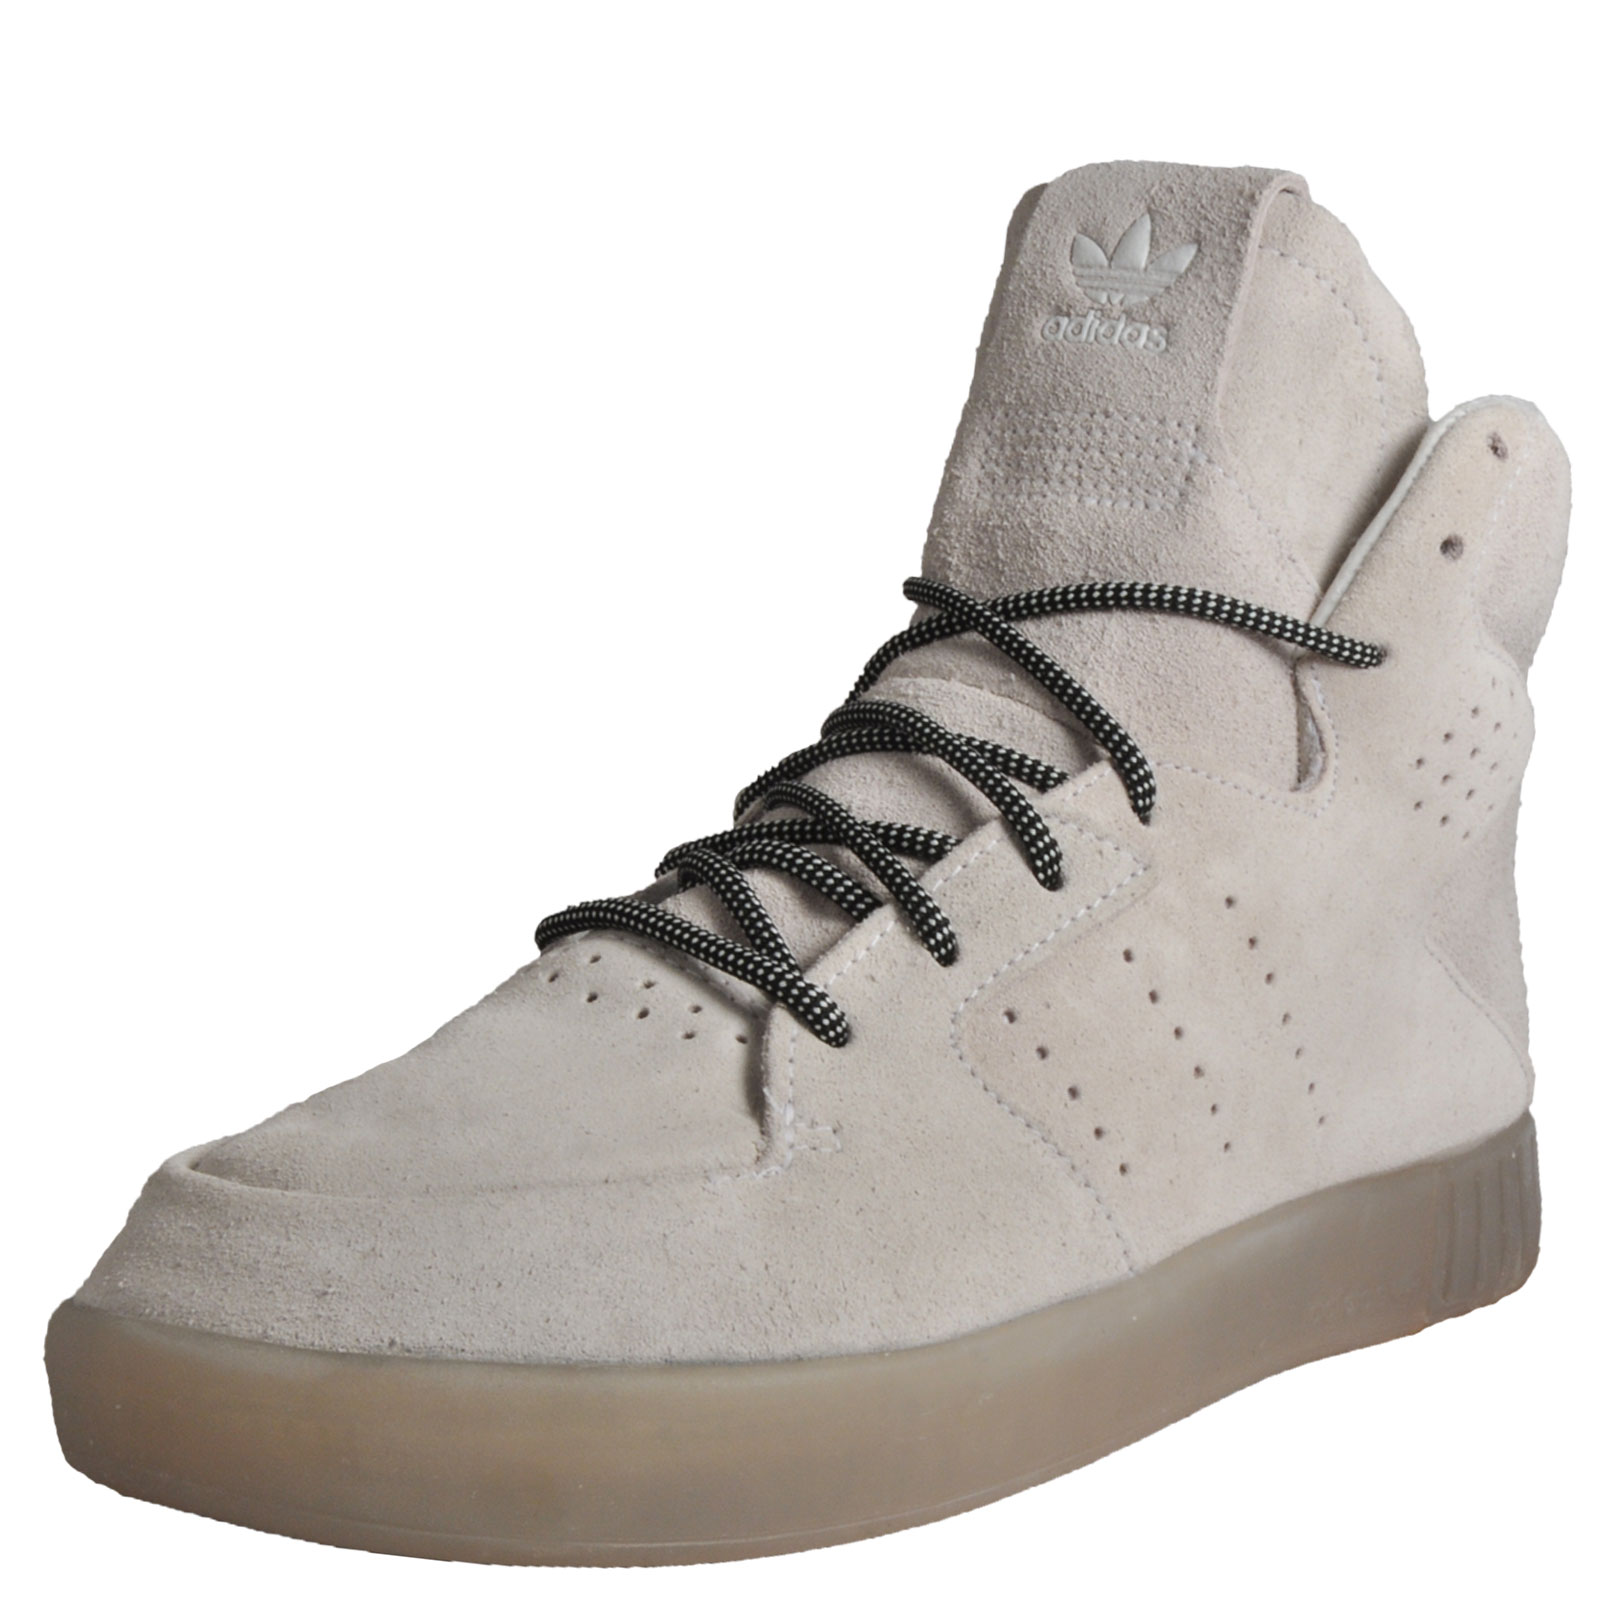 the best attitude 5e978 0452c Details about Adidas Originals Tubular Invader 2.0 Mens Premium Suede Mid  Top Trainers